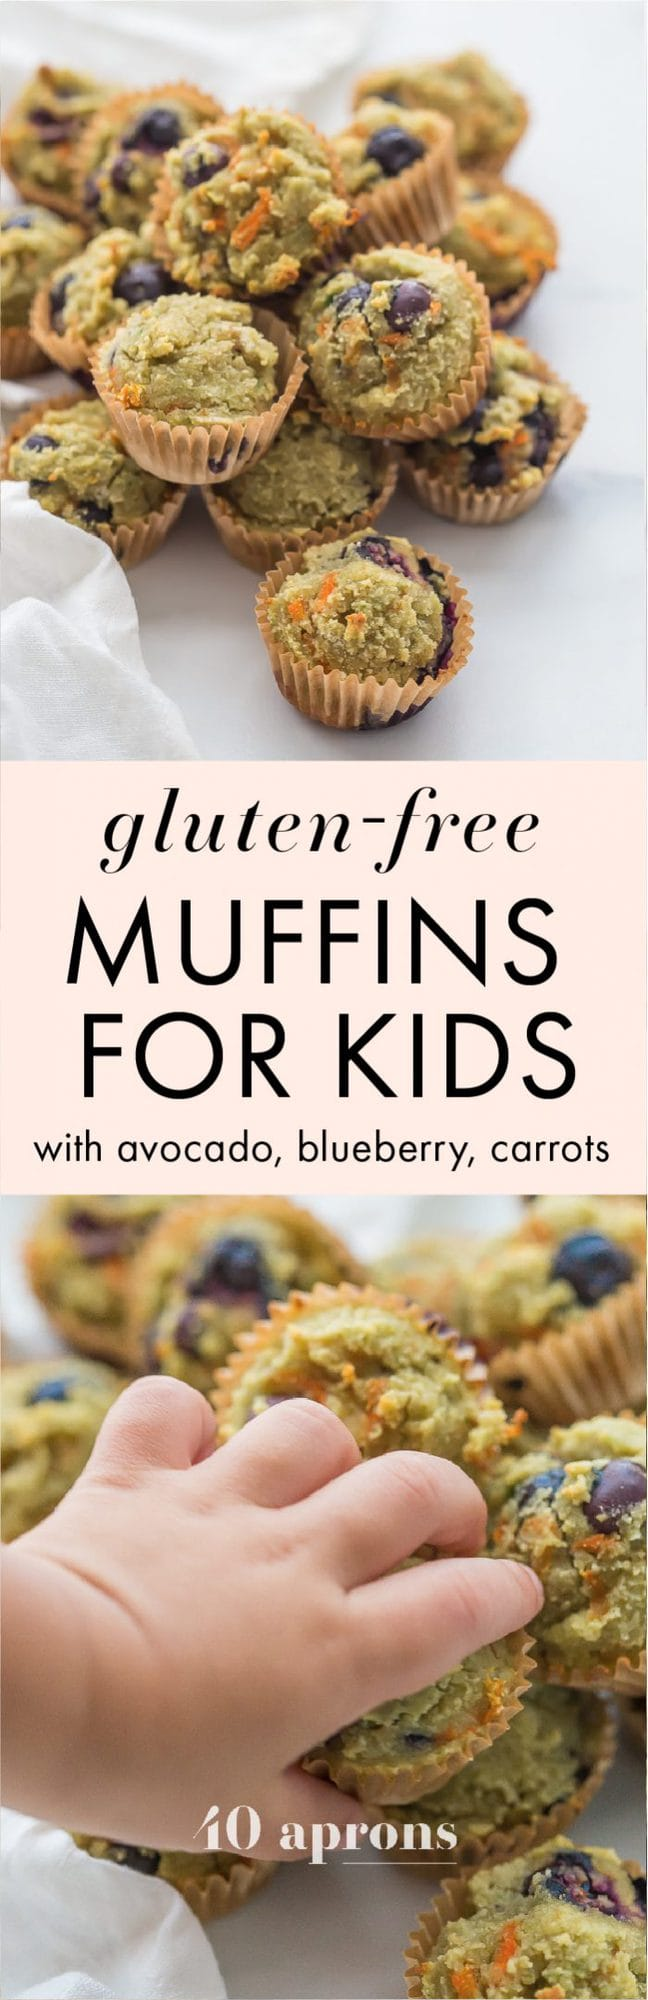 These gluten-free muffins for kids (with blueberries and avocado) are the perfect back-to-school muffins! Gluten and grain free, made with cultured dairy, and with low sugar, they're great to serve to a class, too. These gluten-free muffins for kids are packed with fruits and veggies, including carrots, avocado, and blueberries! I think your family will love these gluten-free muffins for kids just as much as mine does.